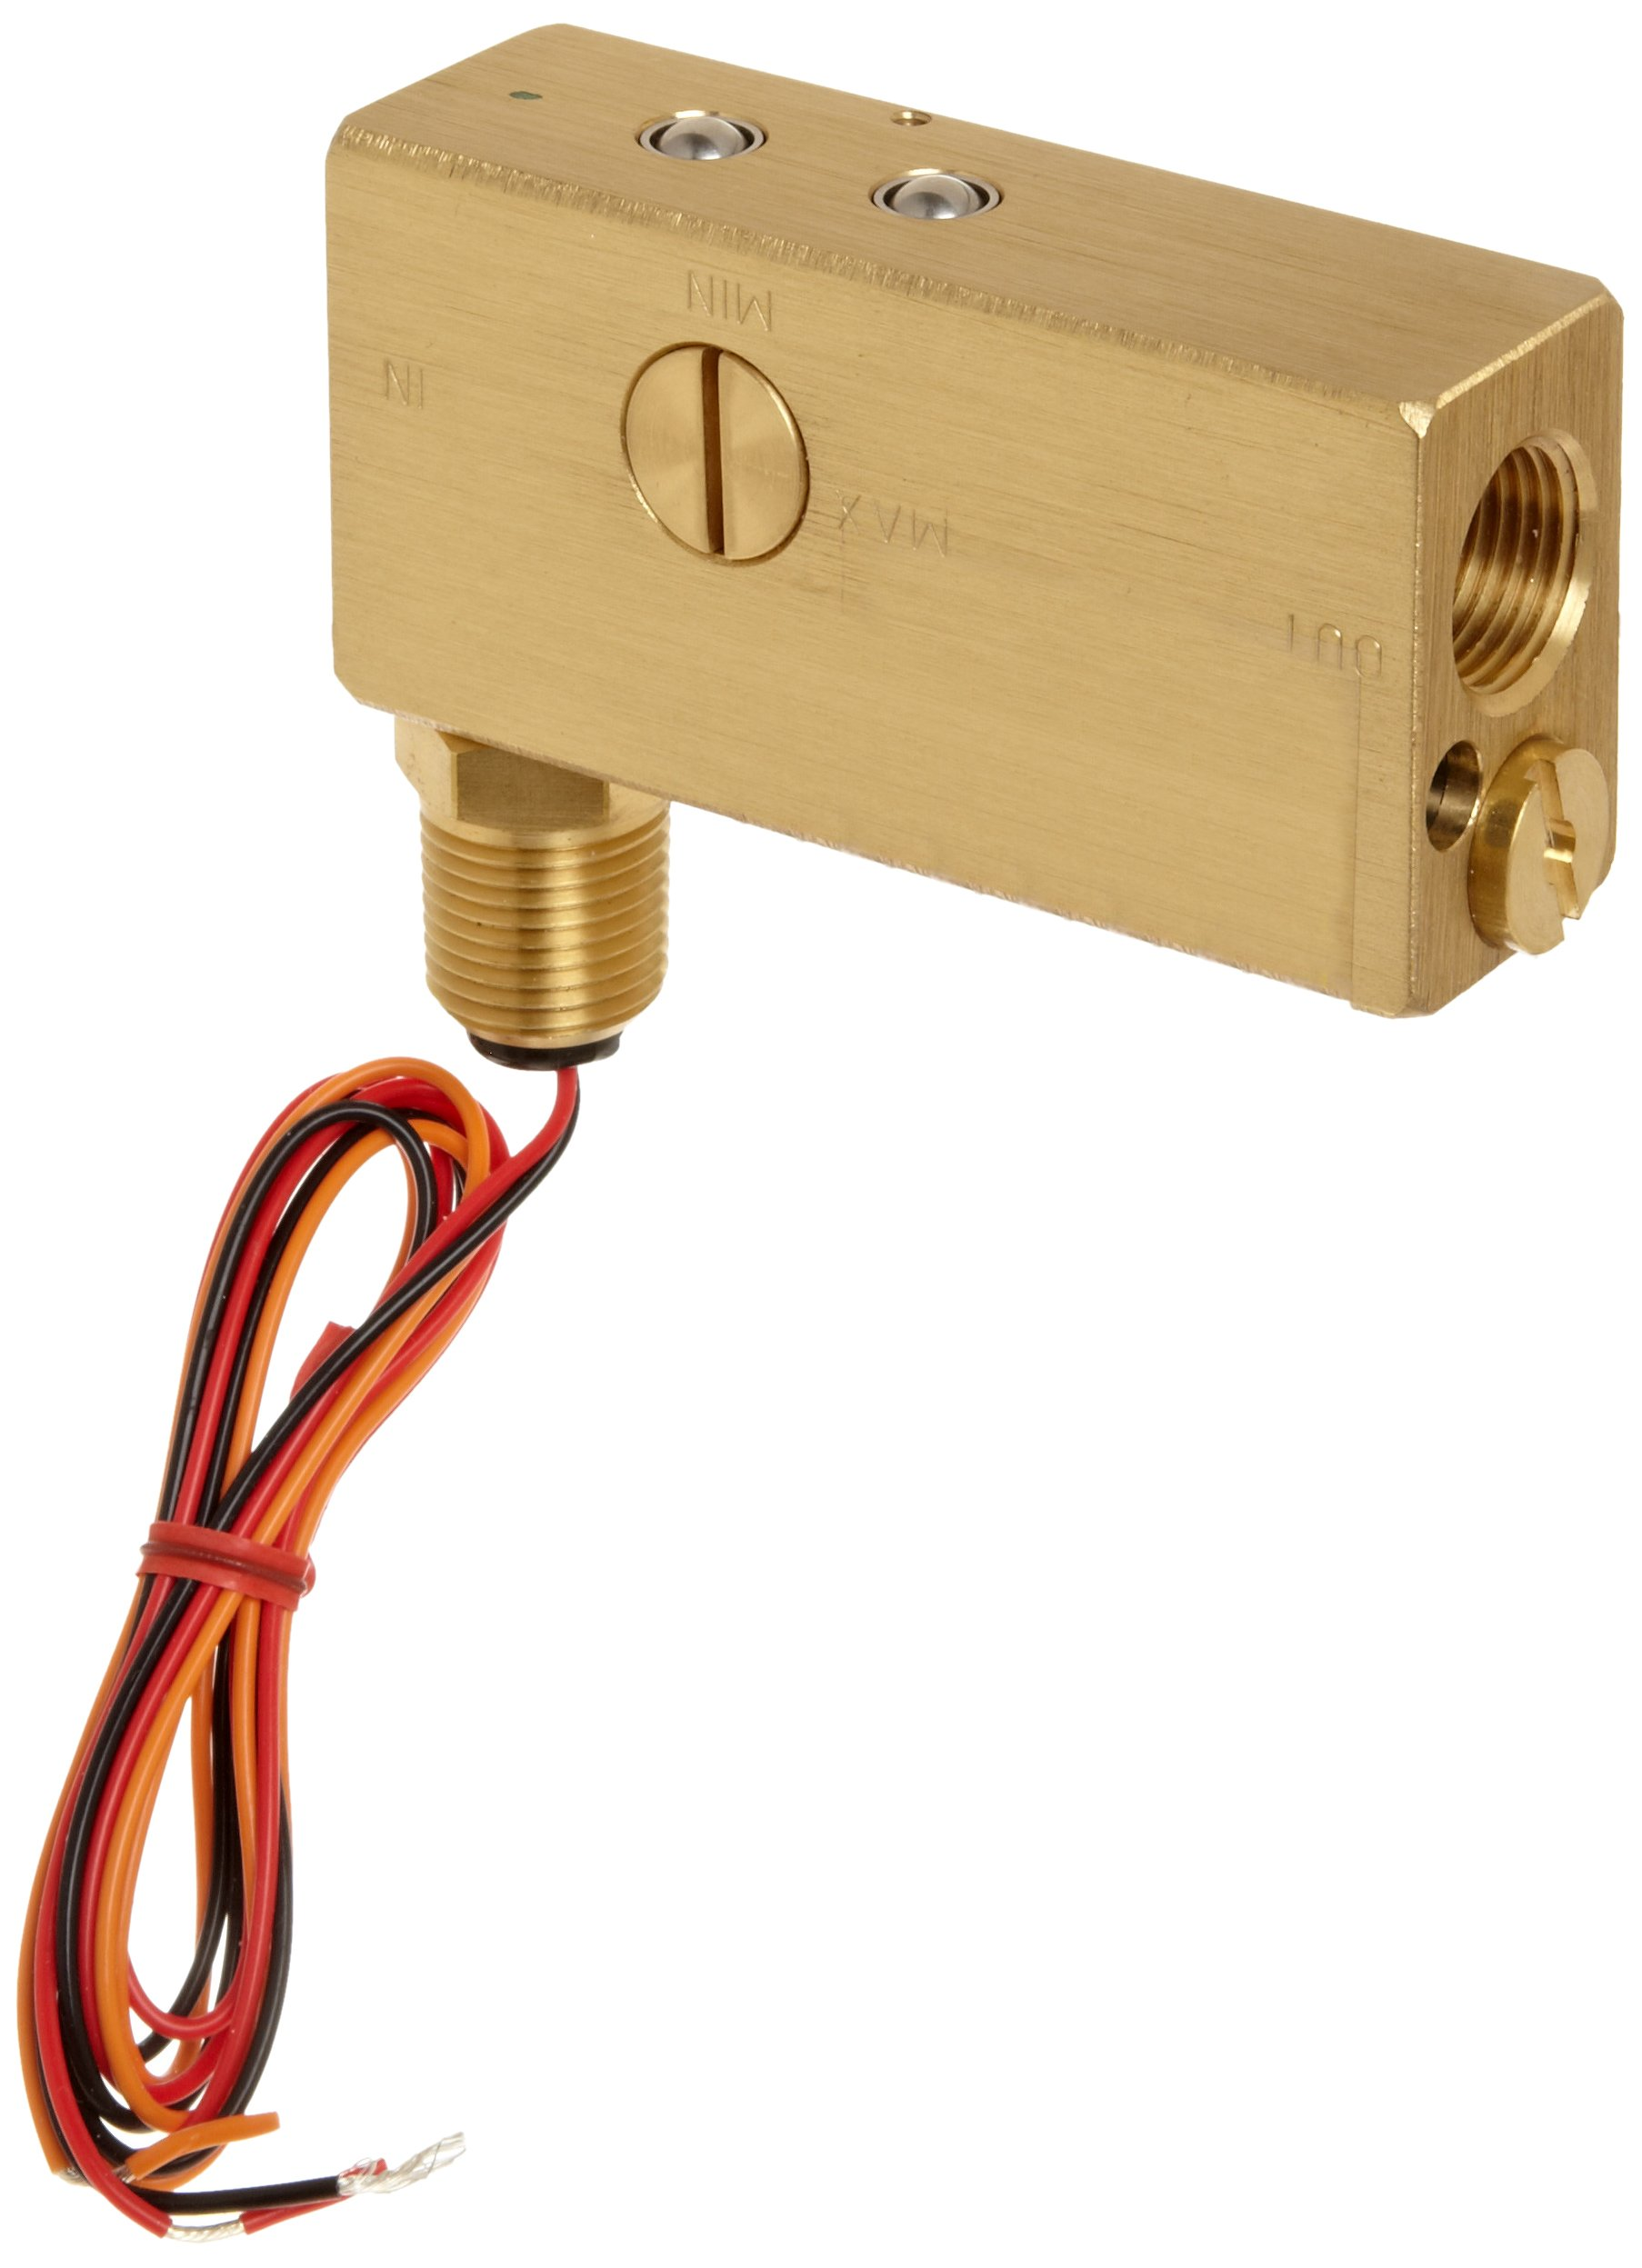 Gems Sensors FS-10798  Series Brass Flow Switch For Use With Water, Inline, Piston Type, With 1/2'' Conduit Connector, 0.50 - 20 gpm Flow Setting Adjustment Range, 1/2'' NPT Female